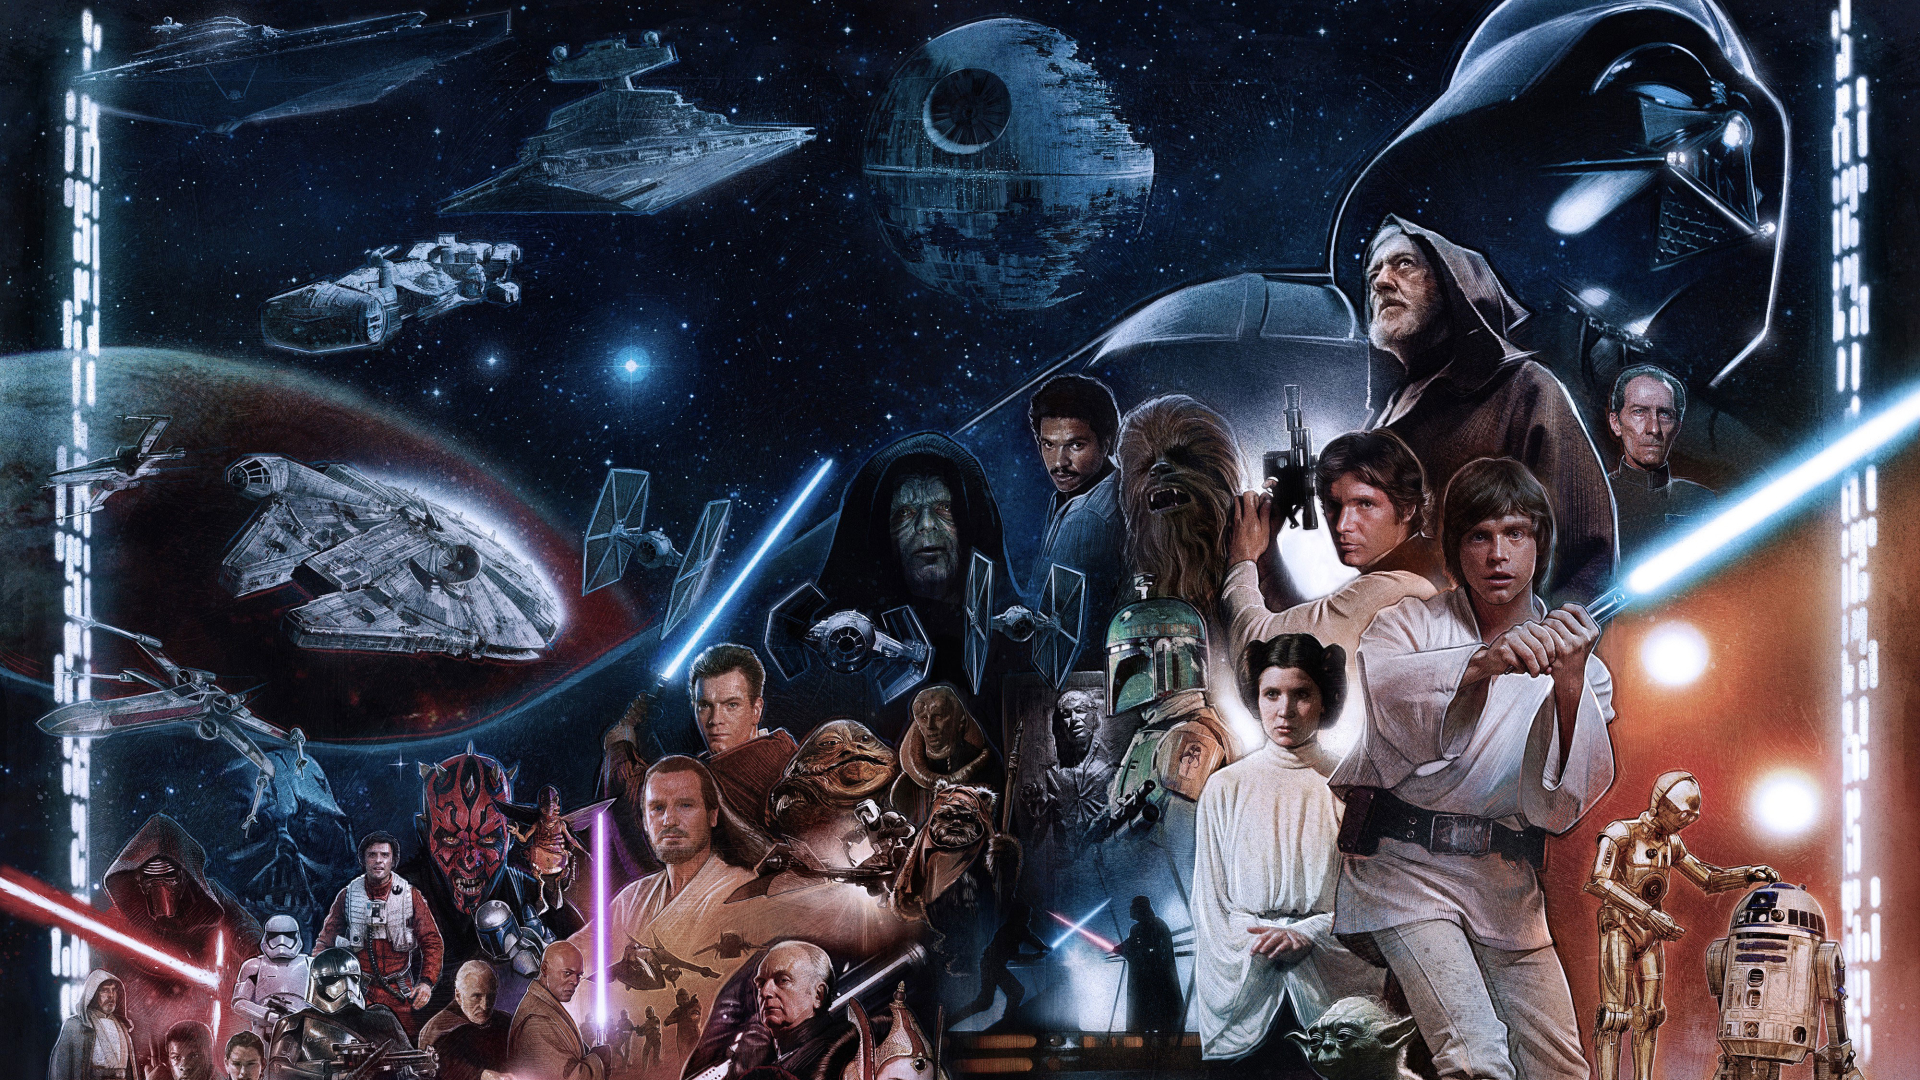 1920x1080 Skywalker Star Wars 1080p Laptop Full Hd Wallpaper Hd Movies 4k Wallpapers Images Photos And Background